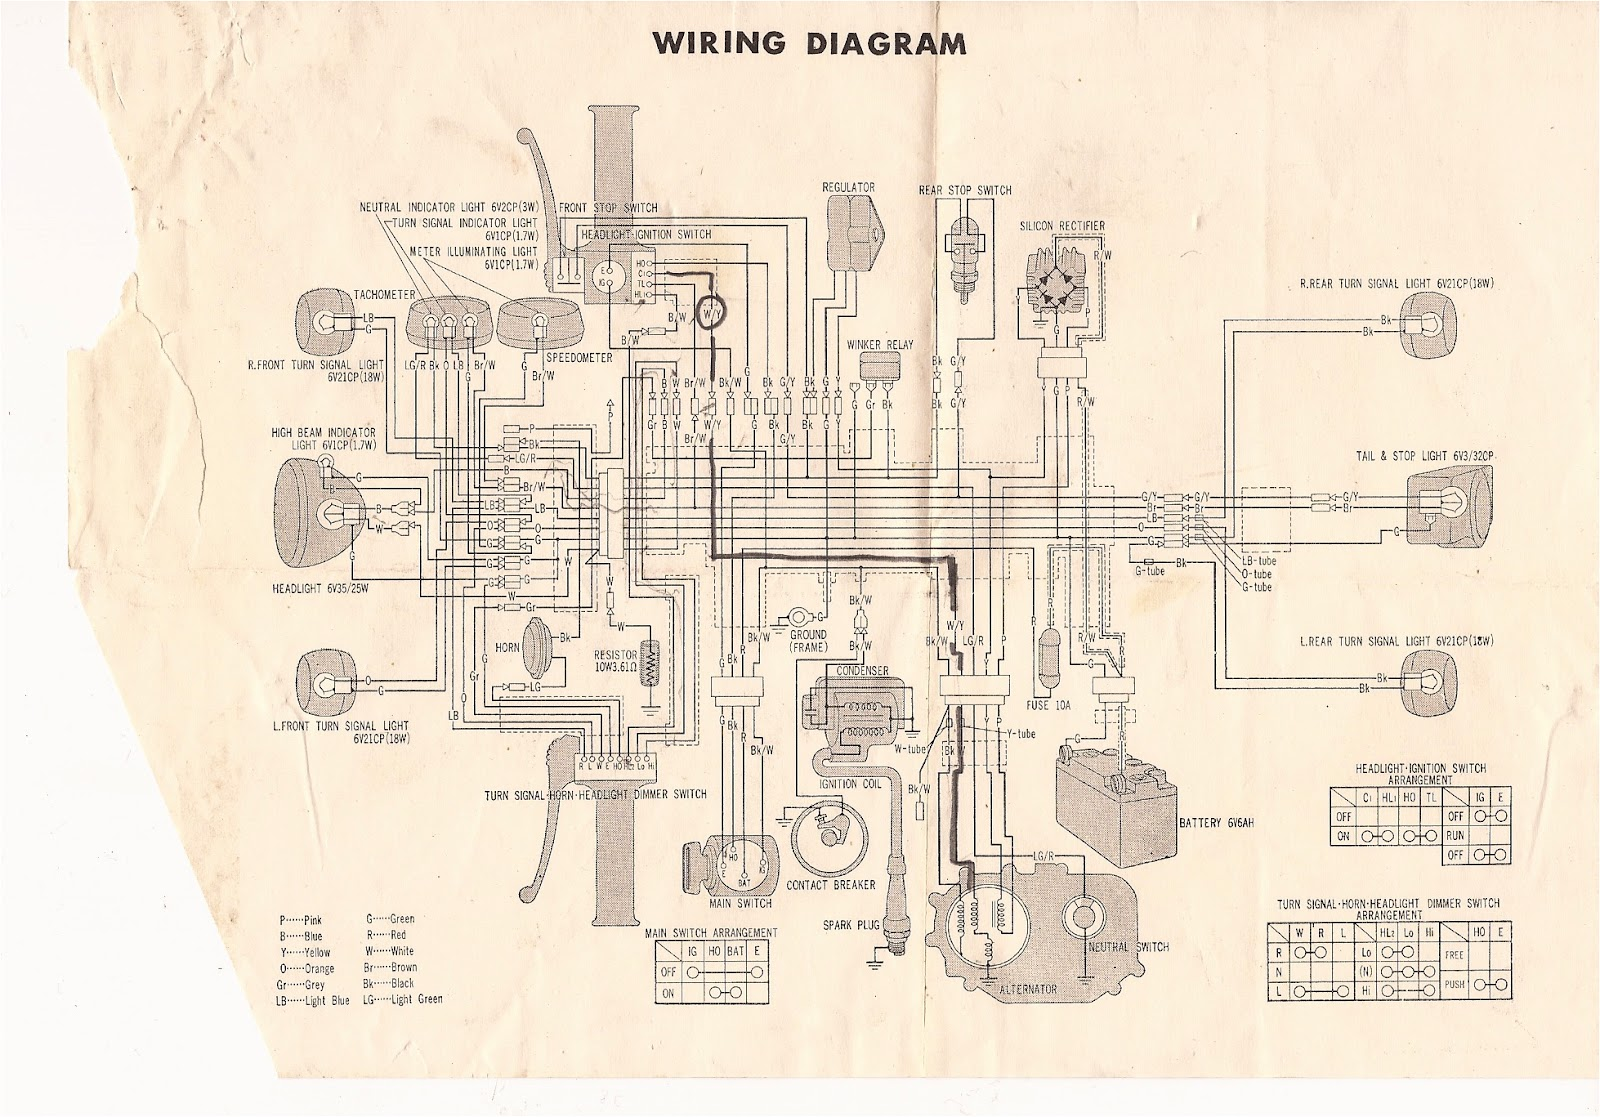 XL350+Wiring+diagram honda xr 125 wiring diagram custom honda xr and xl \u2022 free wiring 1974 honda cb360 wiring diagram at reclaimingppi.co